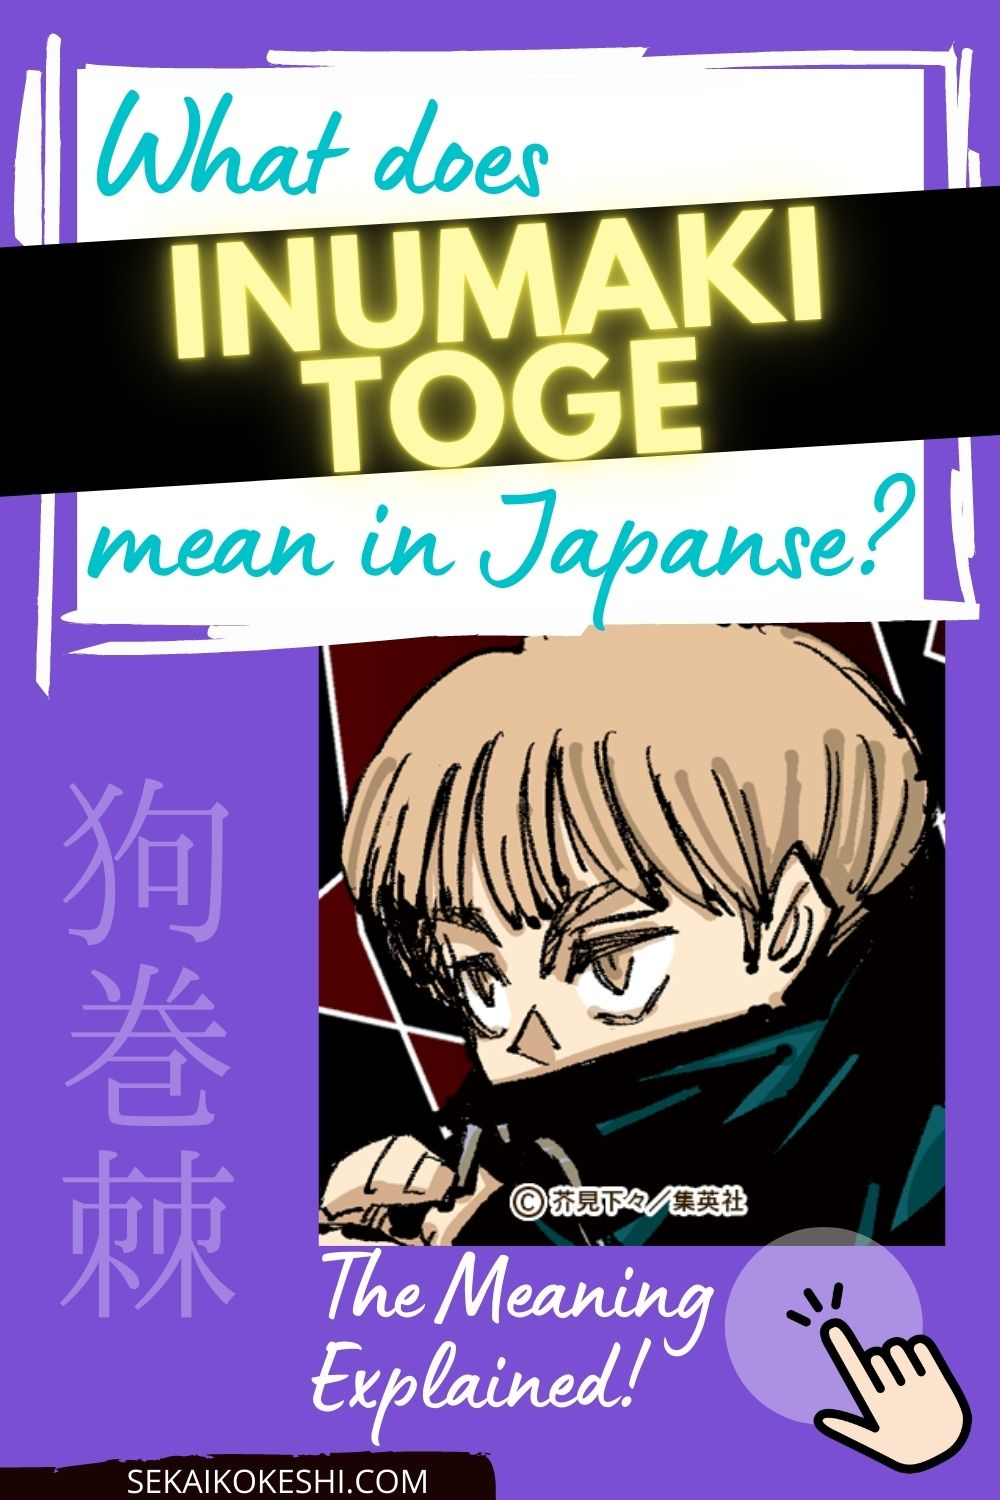 what does inumaki toge mean in japanese? the meaning explained! sekaikokeshi.com